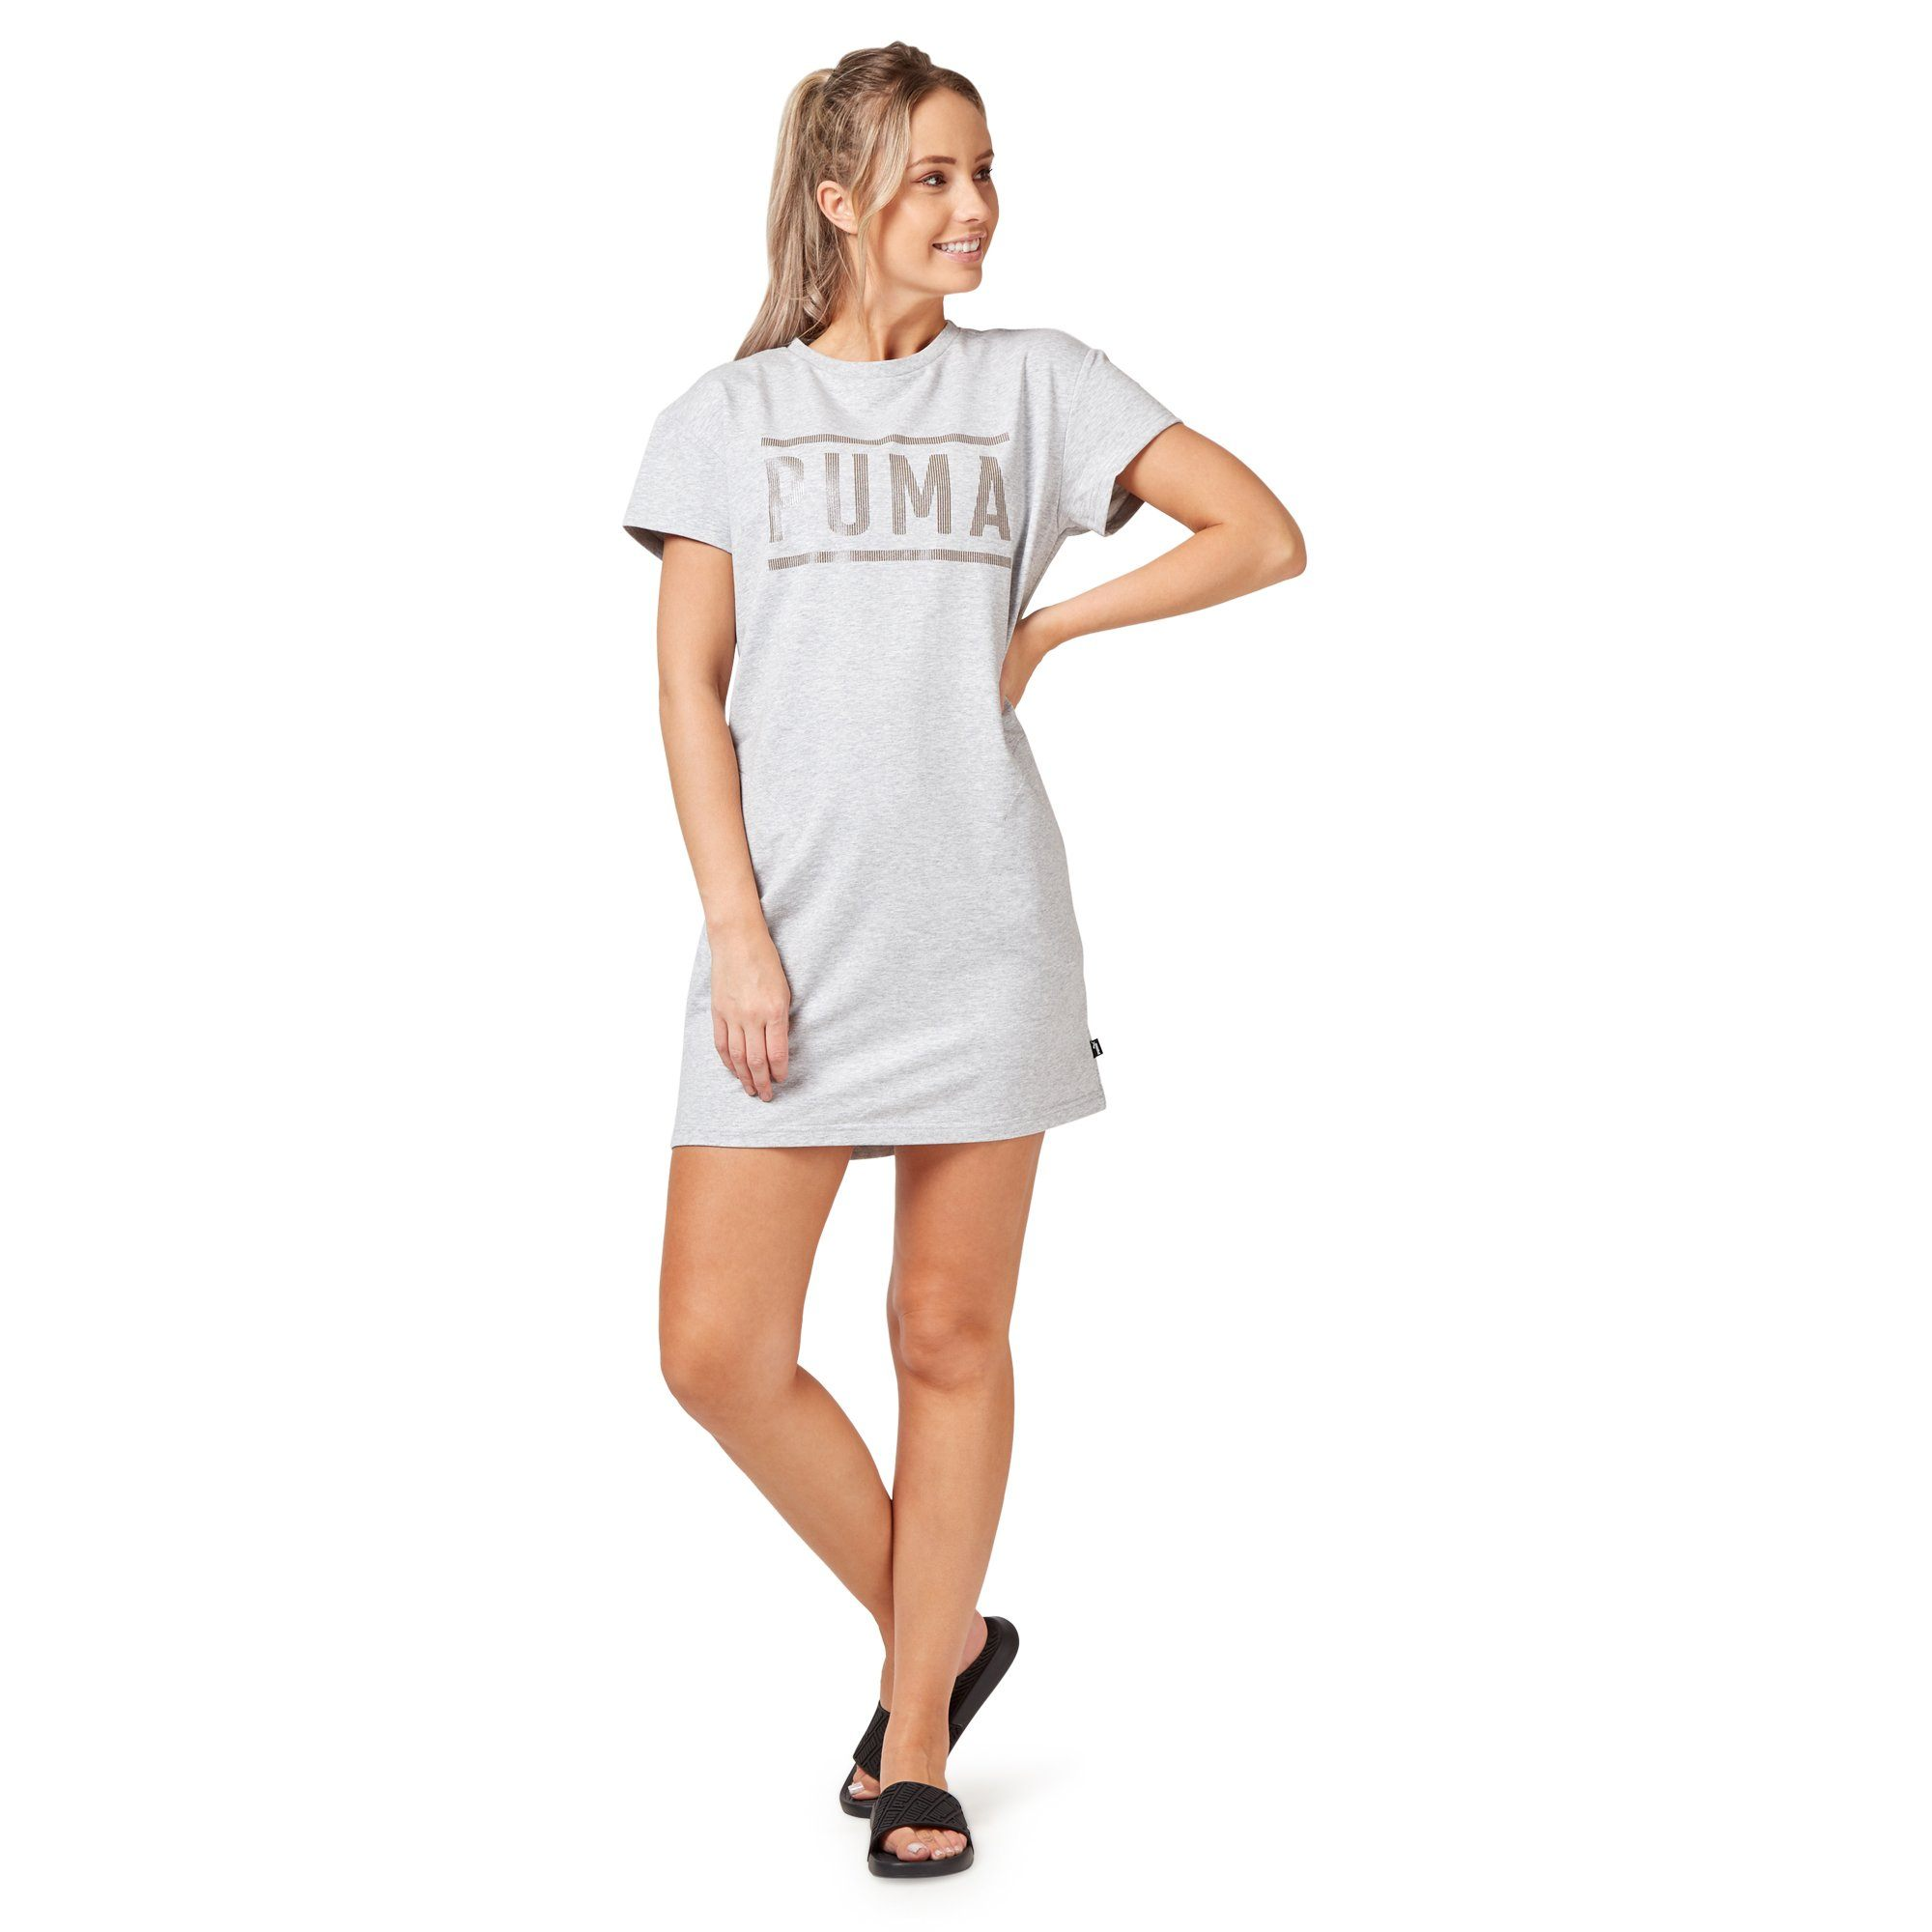 Puma Women's Athletic Dress - Light Grey Apparel Puma  (2122609131579)